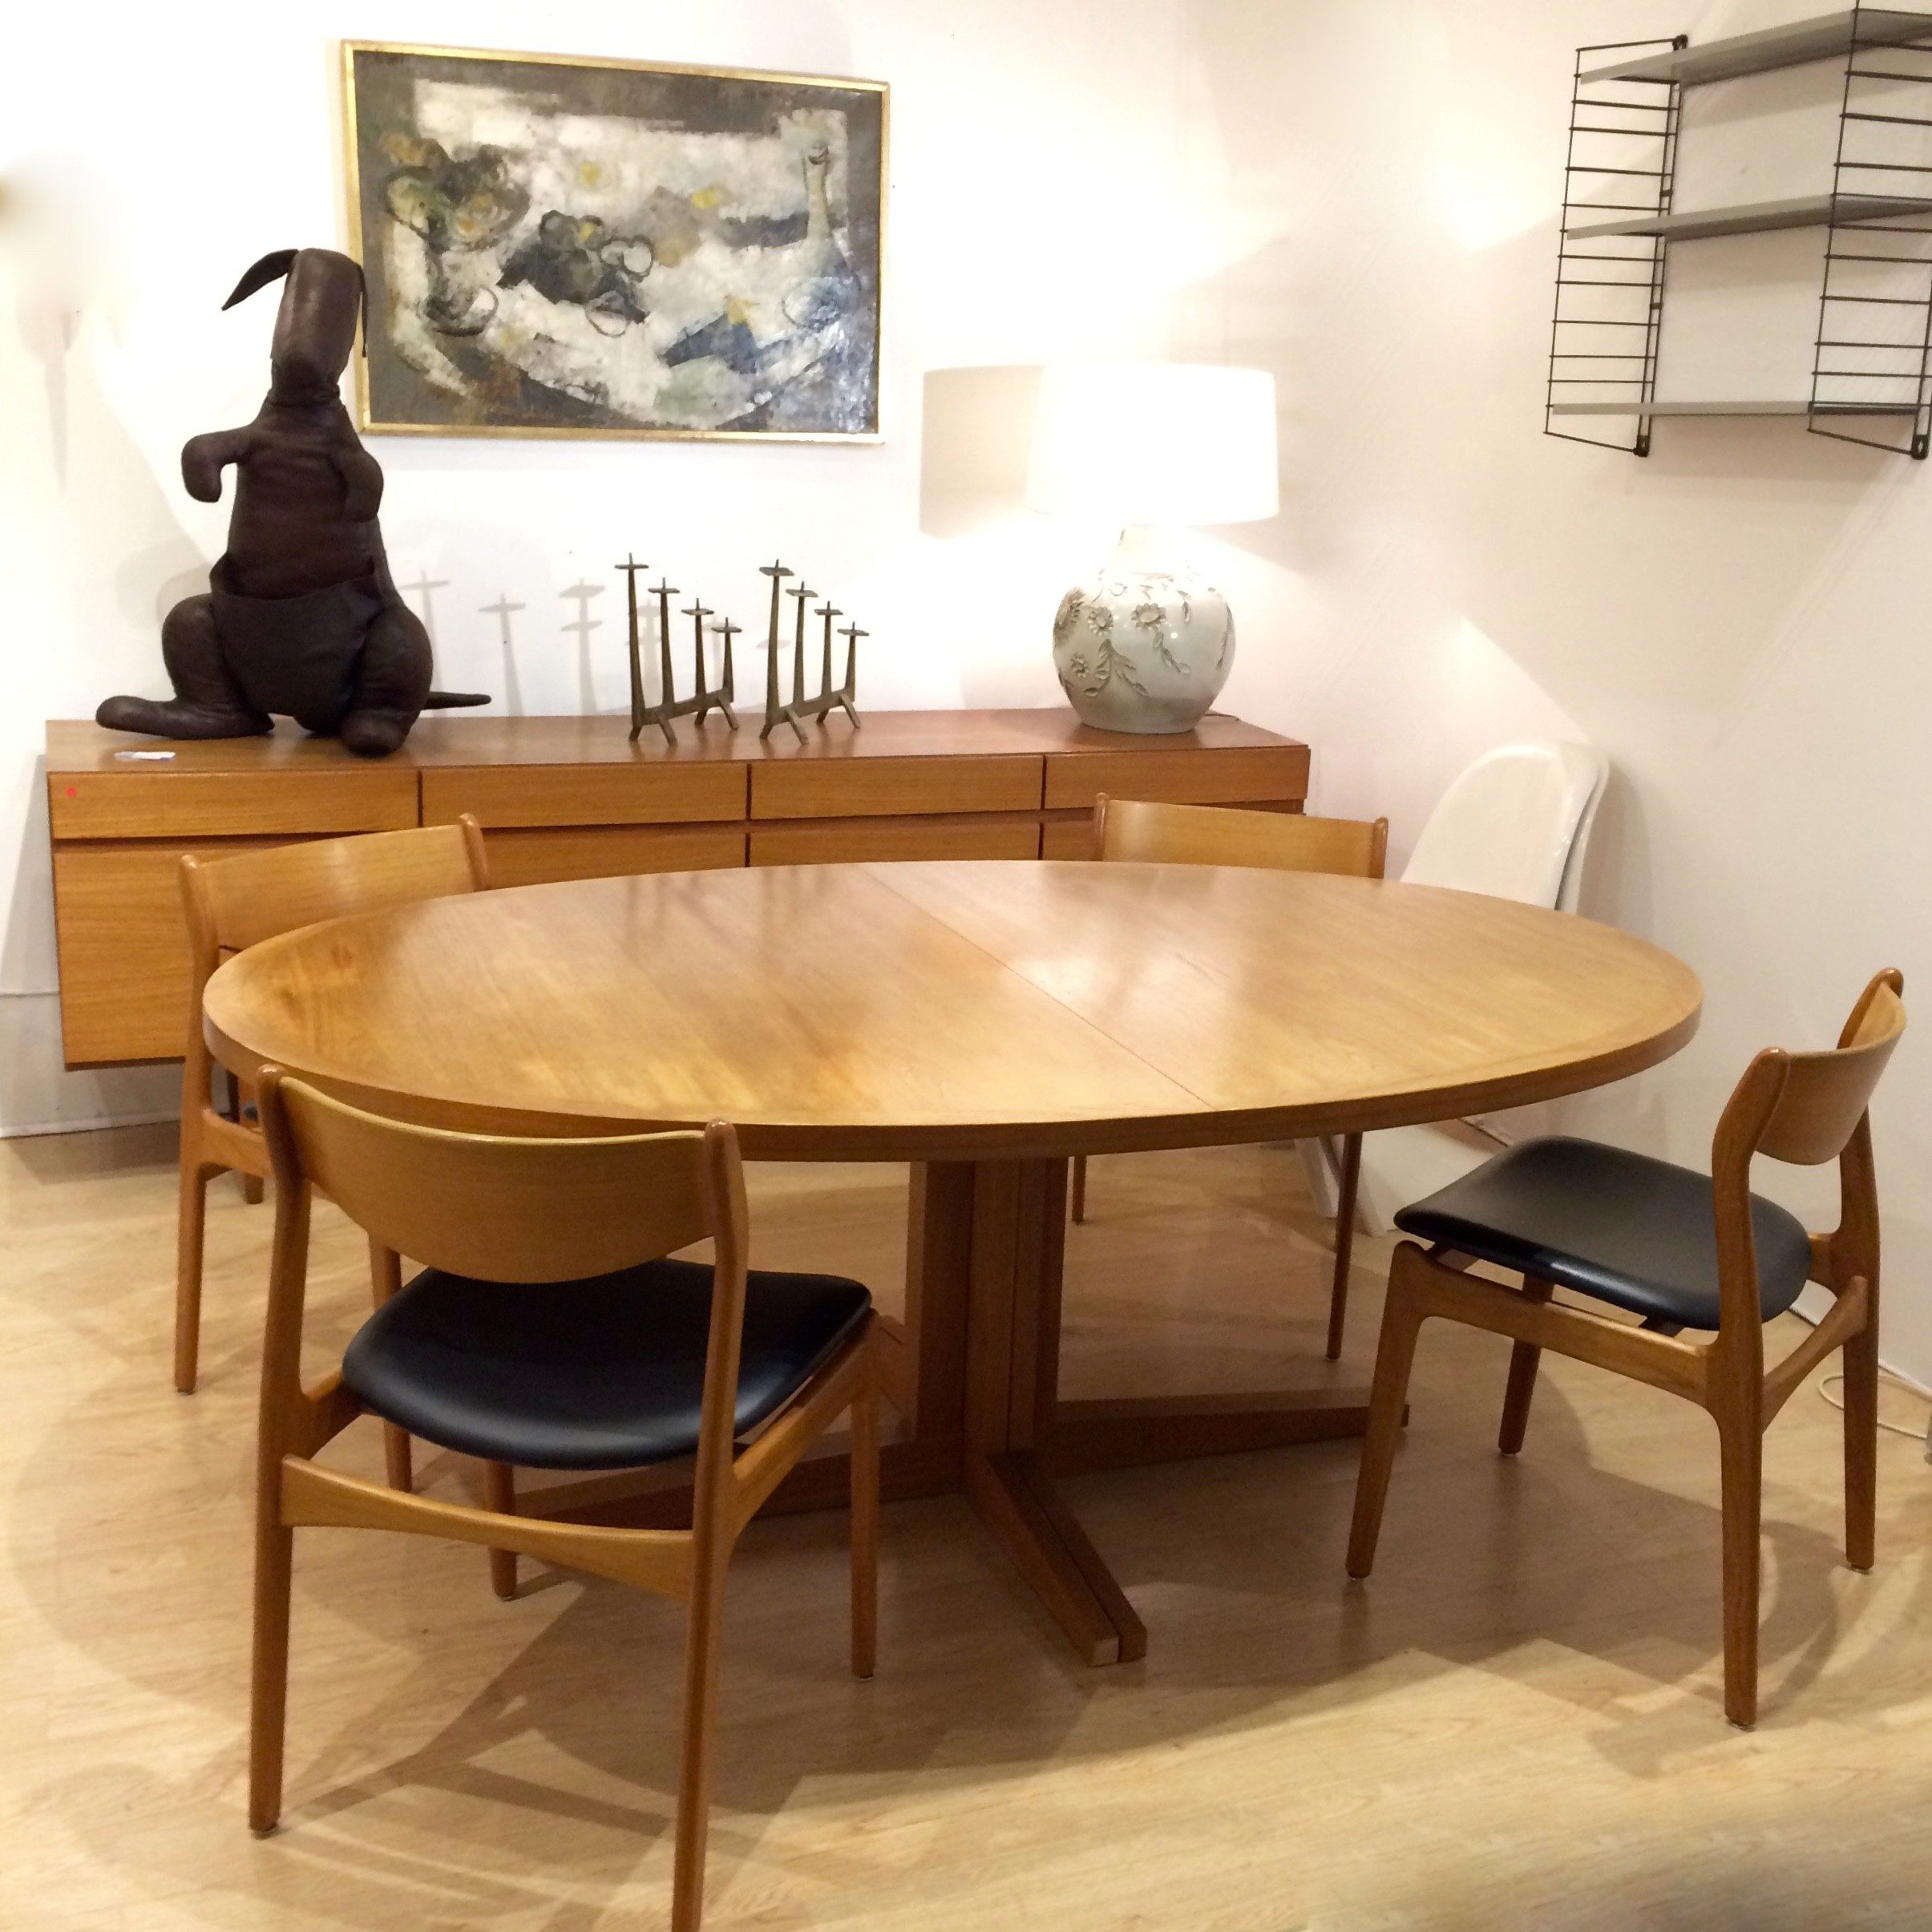 8  Seat Kitchen amp Dining Tables Youll Love  Wayfair